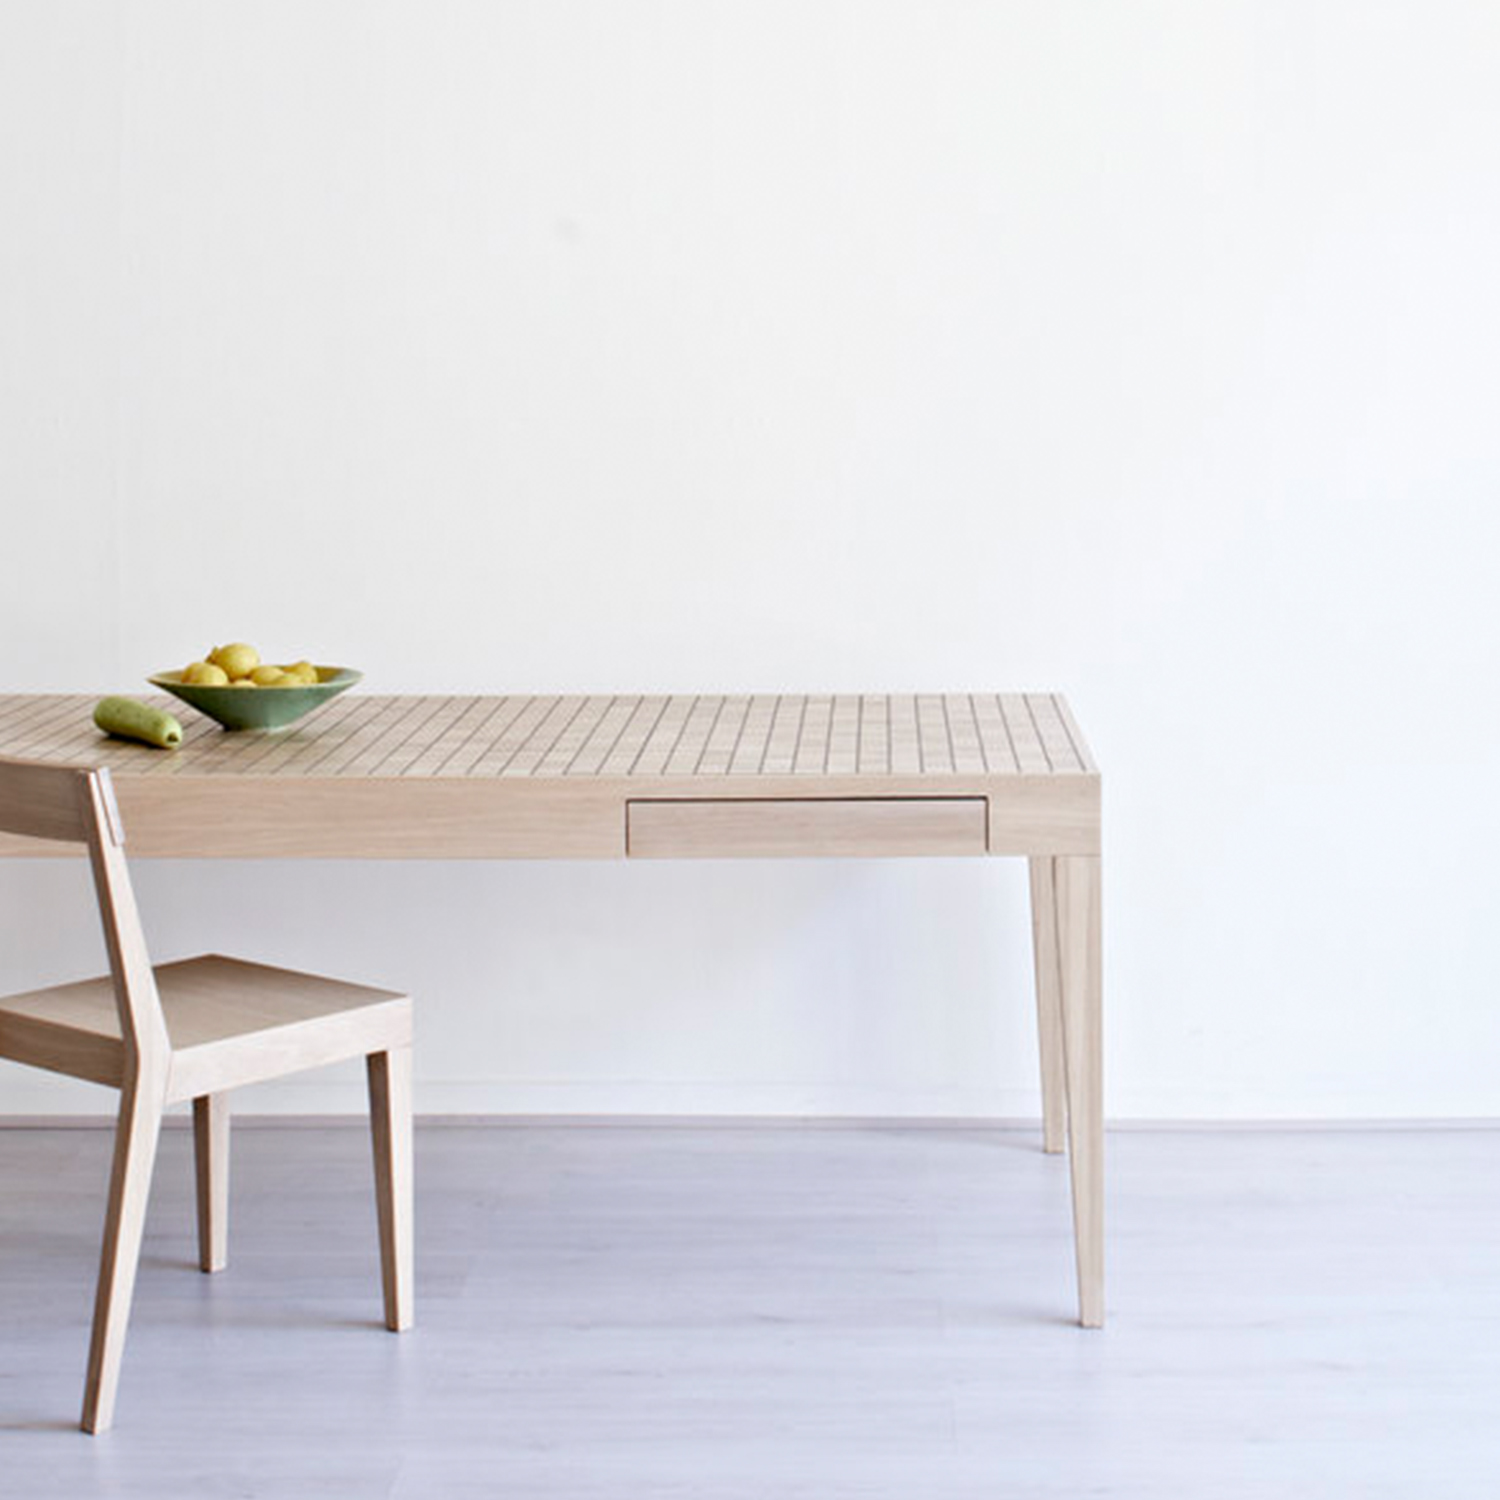 Furniture for Another Brand